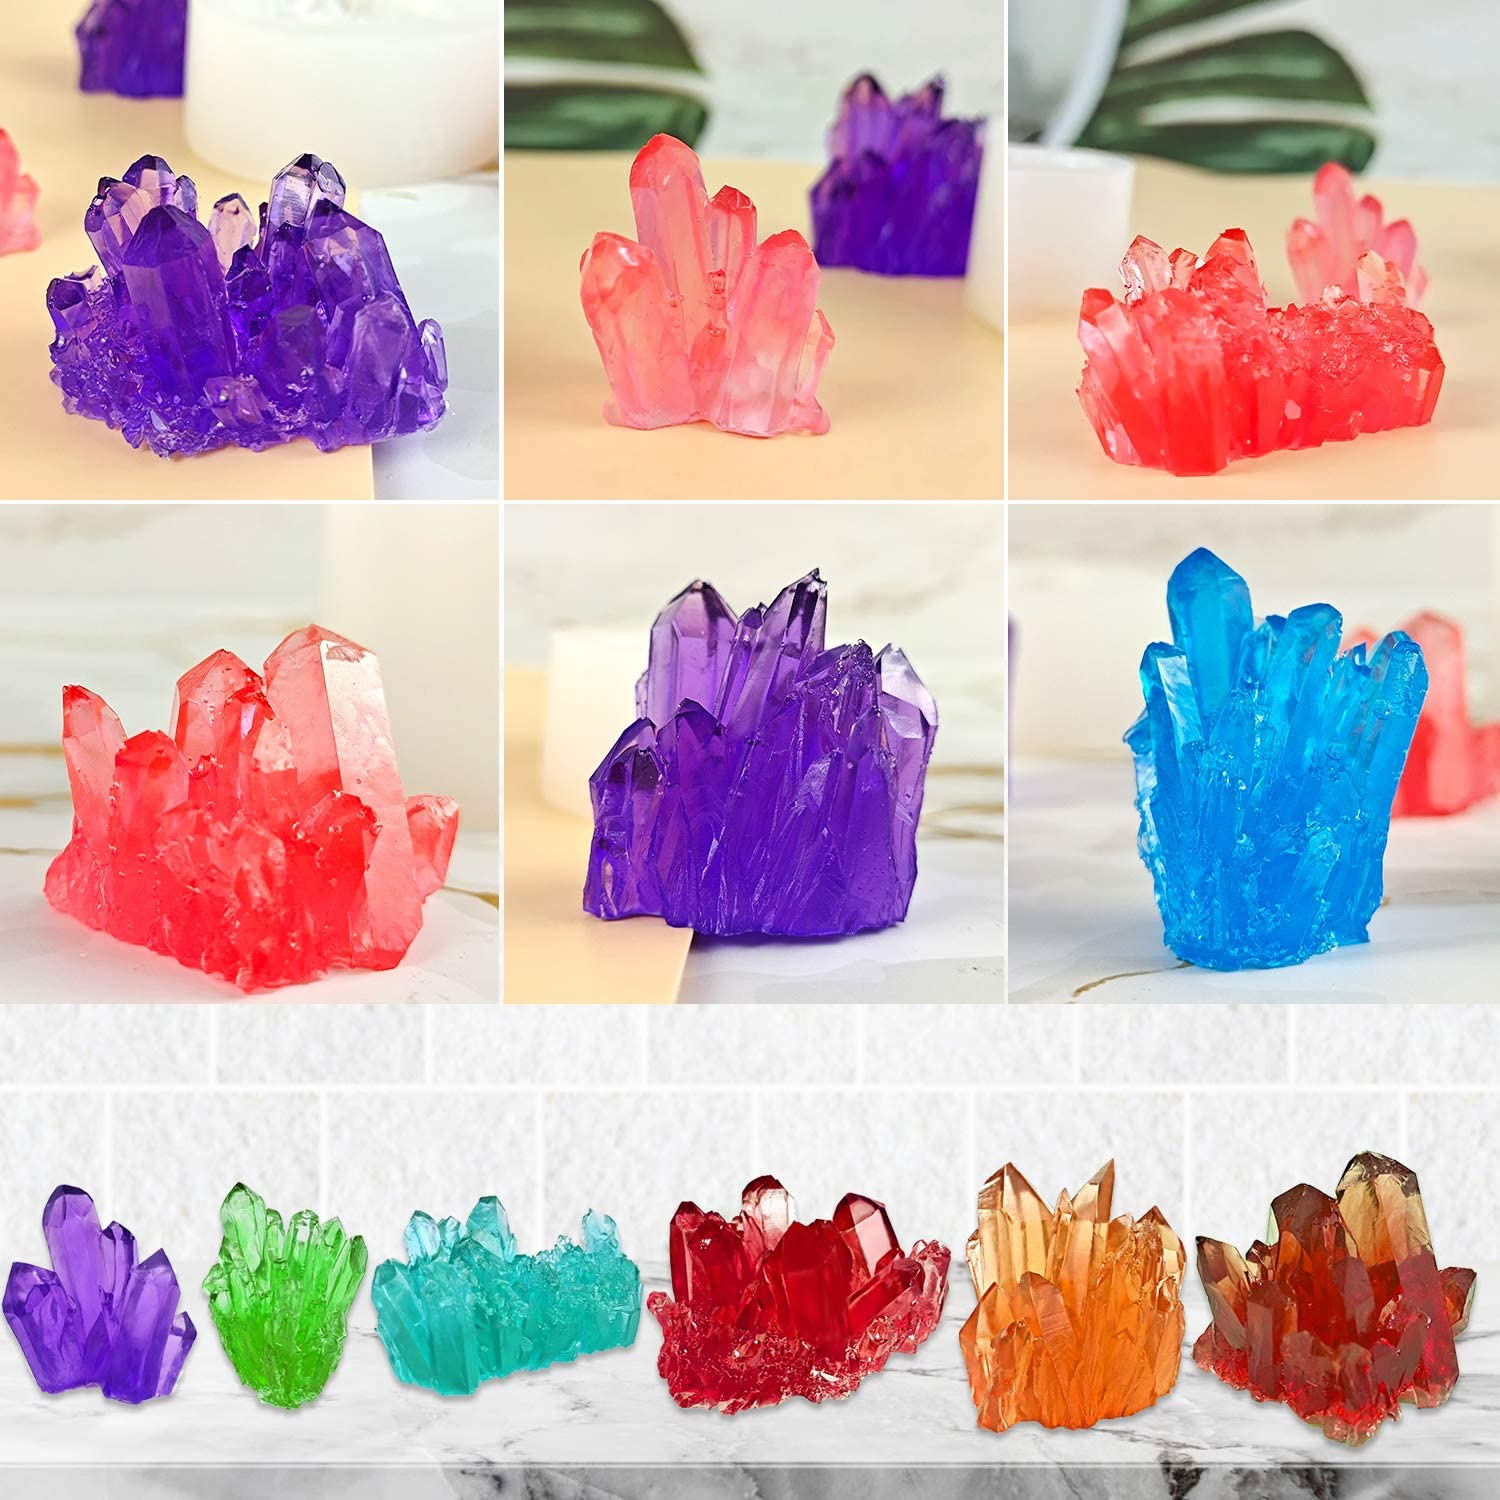 Isomalt Gems Home Centerpiece Decor Silicone Growing Crystal Cluster Quartz Rock Mould for Druzy Fondant Cake Decoration Mity rain 6 Pcs Resin Crystal Moulds Polymer Clay